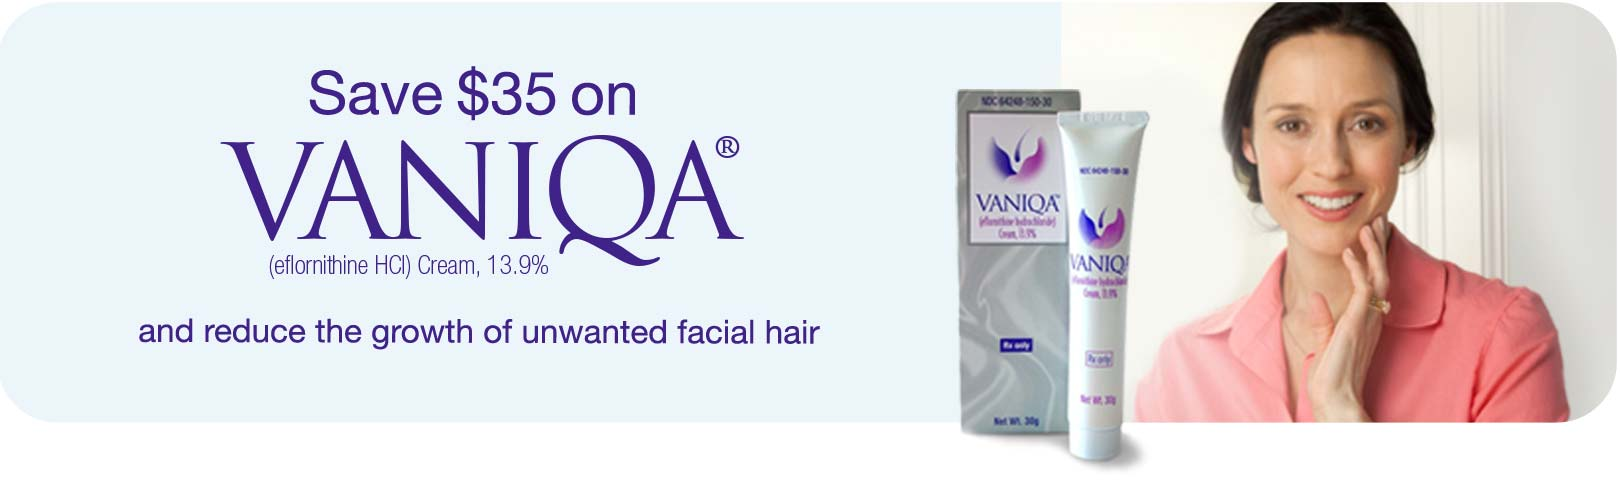 Save $35 on Vaniqa(R) (eflomithine HCl) Cream, 13.9% and reduce the growth of unwanted facial hair.